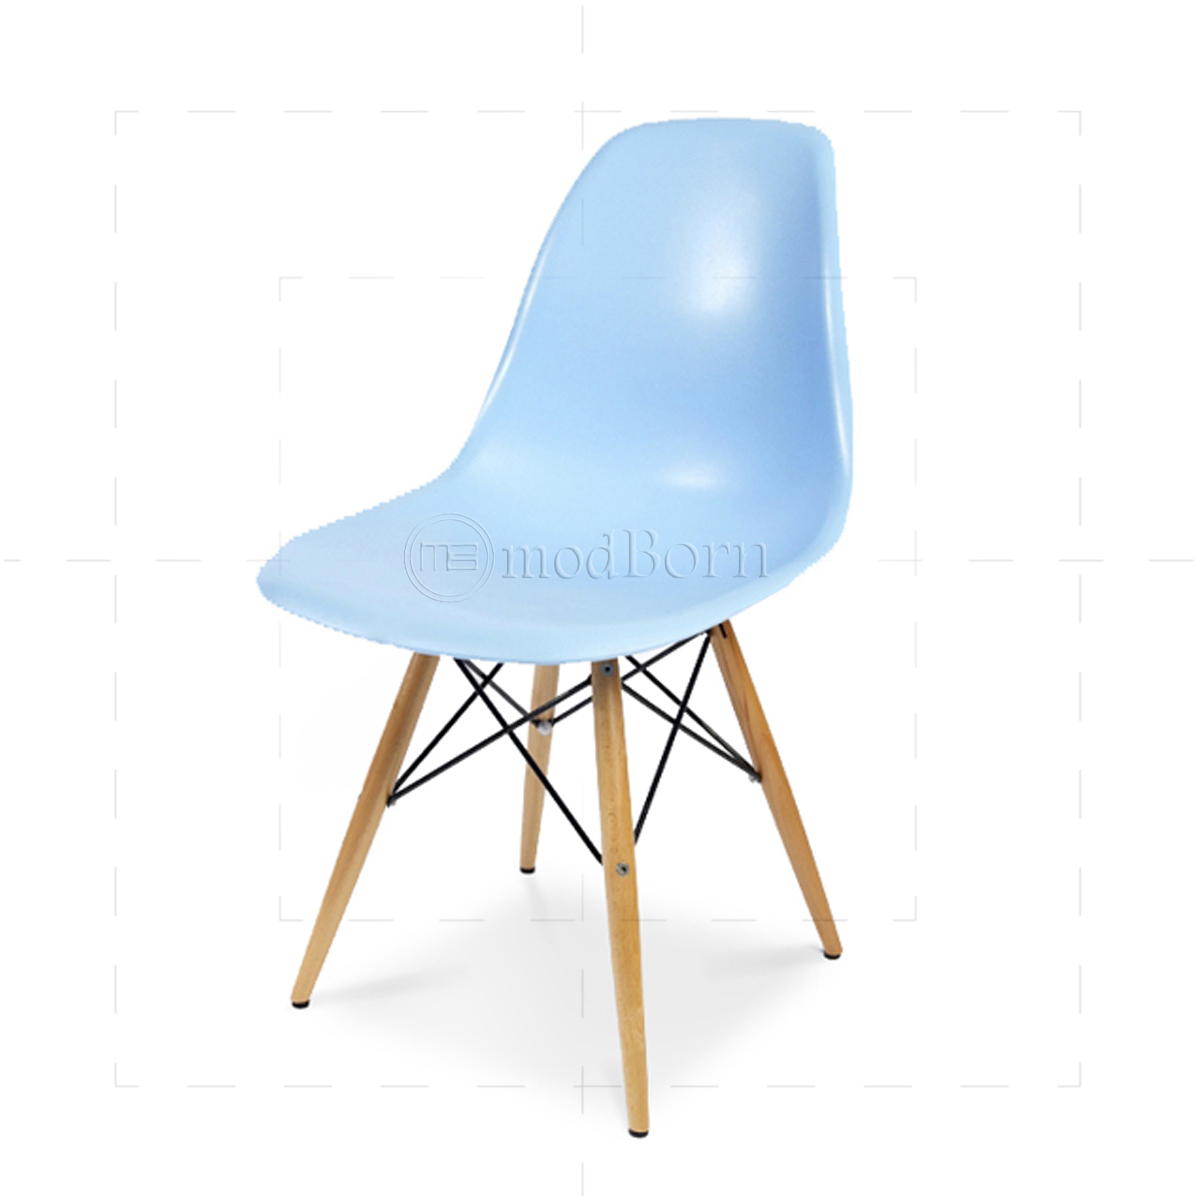 Eames style dining dsw chair blue replica for Eames dsw replica